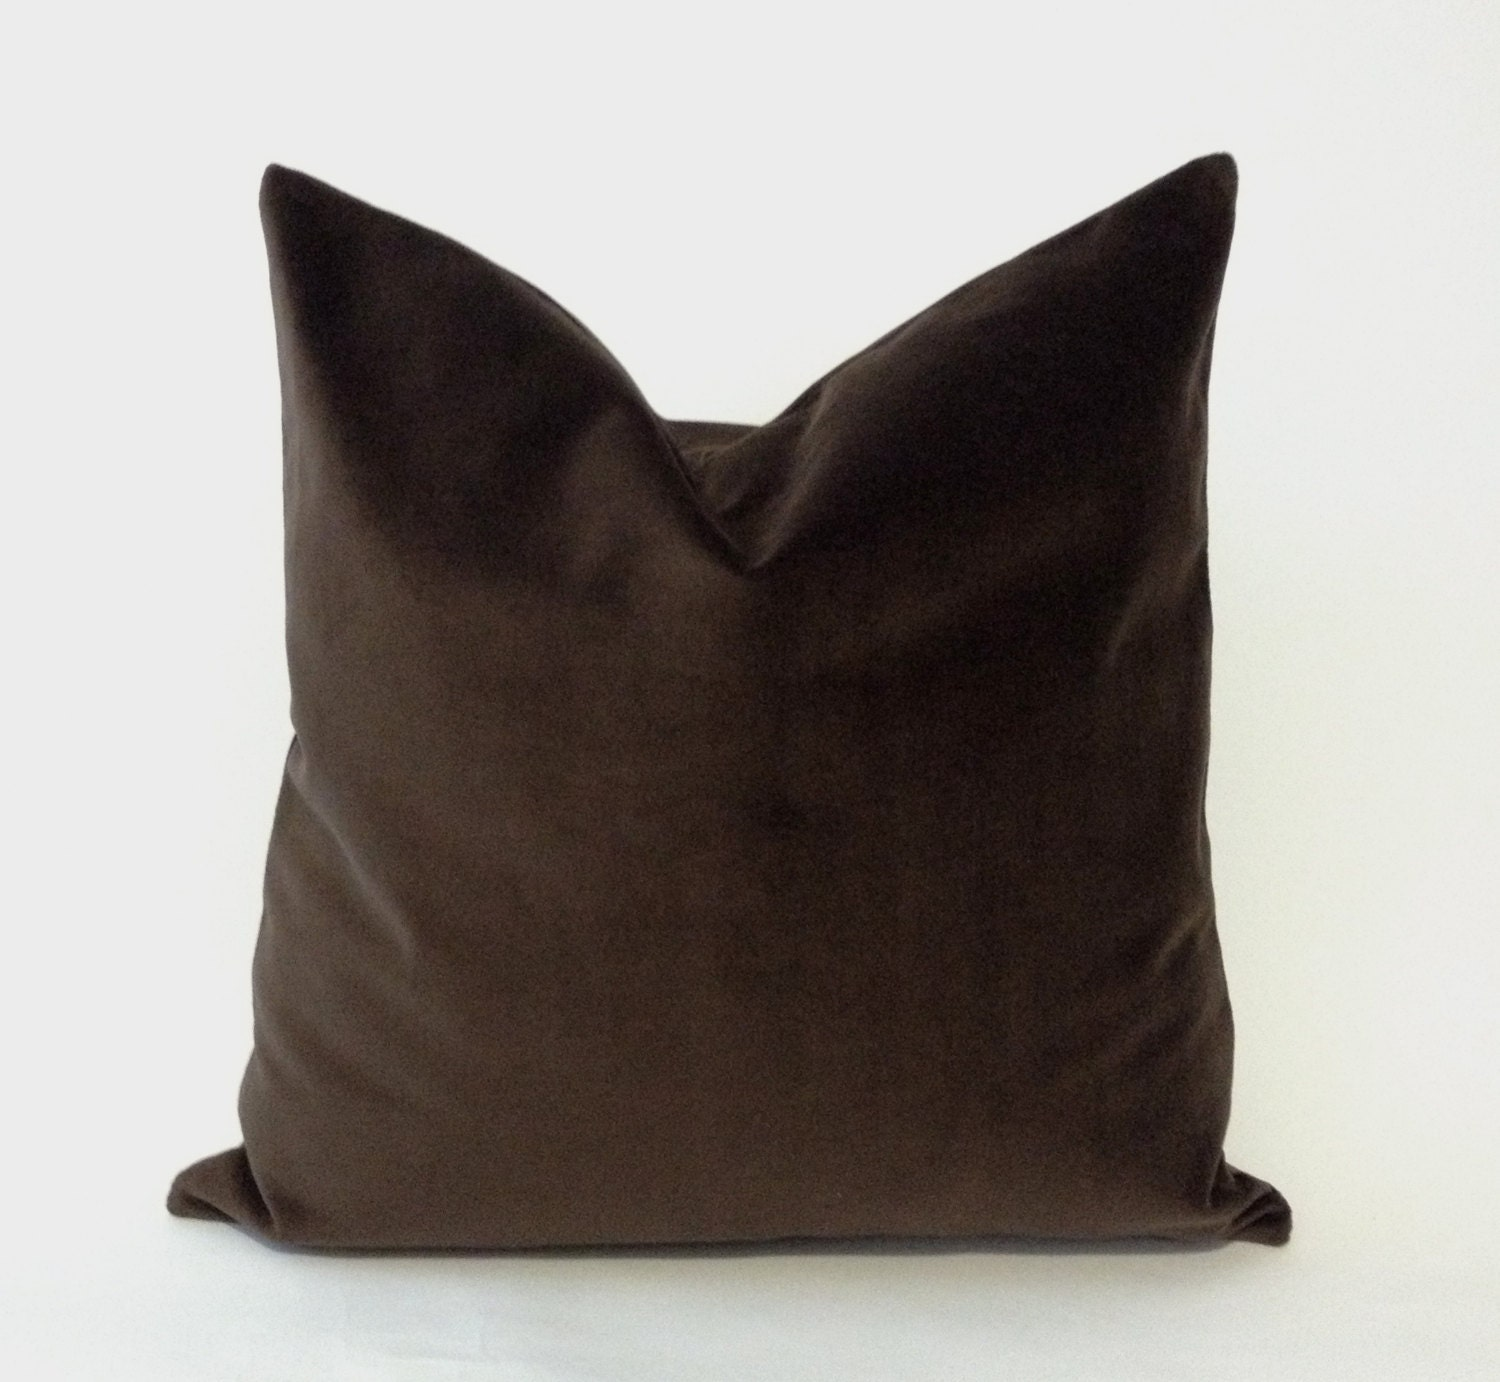 Decorative Pillow Covers 26x26 : Chocolate Brown Cotton Velvet Pillow Cover - Decorative Accent Throw Pillows -Invisible Zipper ...